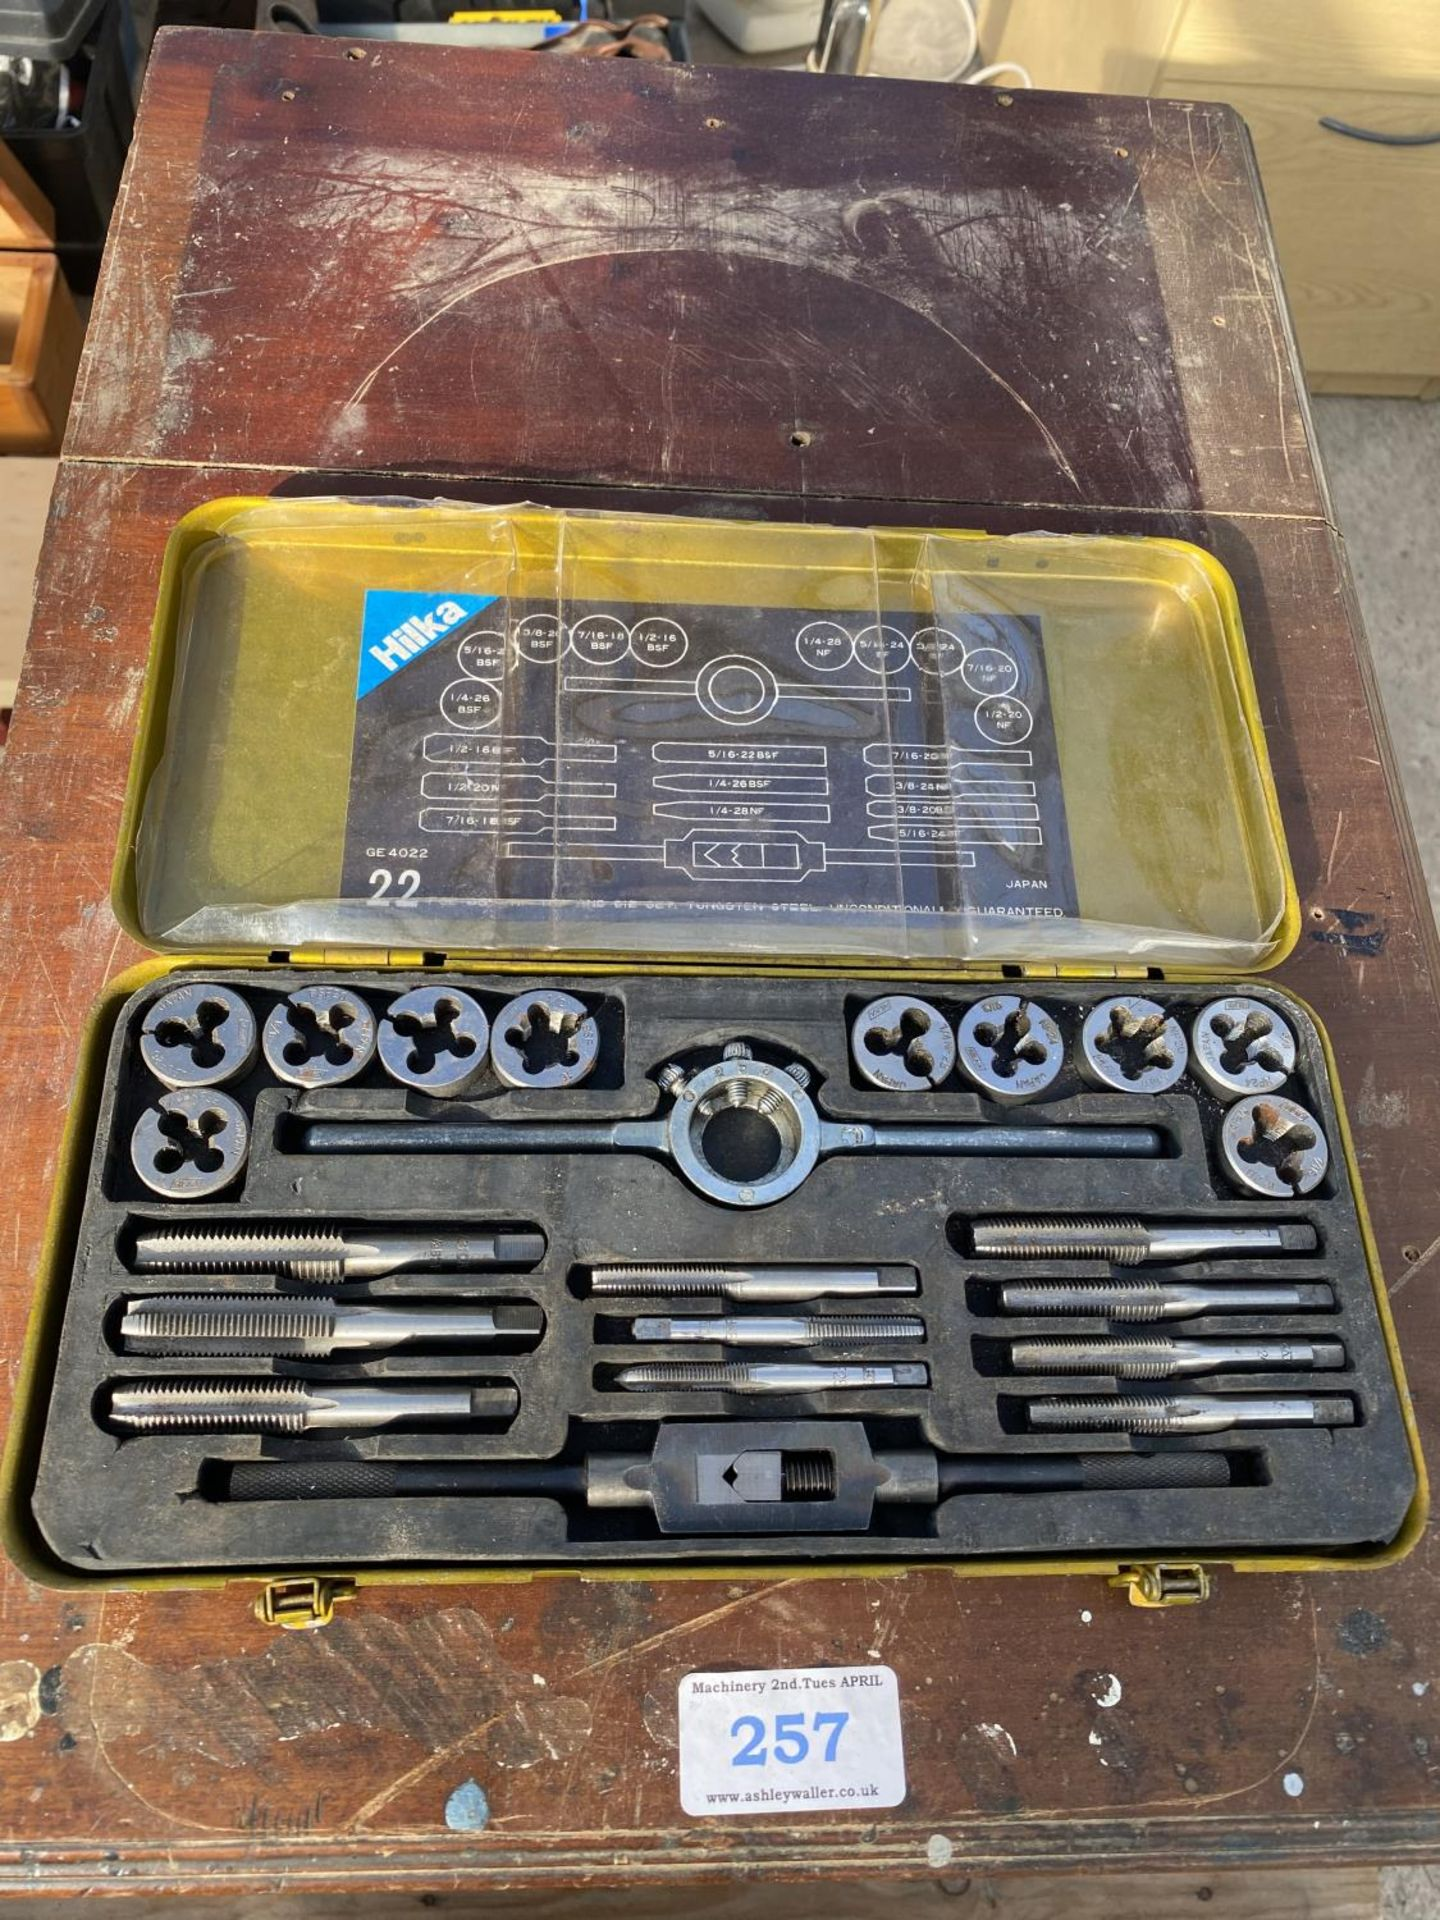 A WOOODEN FOUR DRAW CABINET AND CONTENTS TO INCLUDE TAP AND DIE, WIRE BRUSHES, AXE, TAPE MEASURES - Image 2 of 8